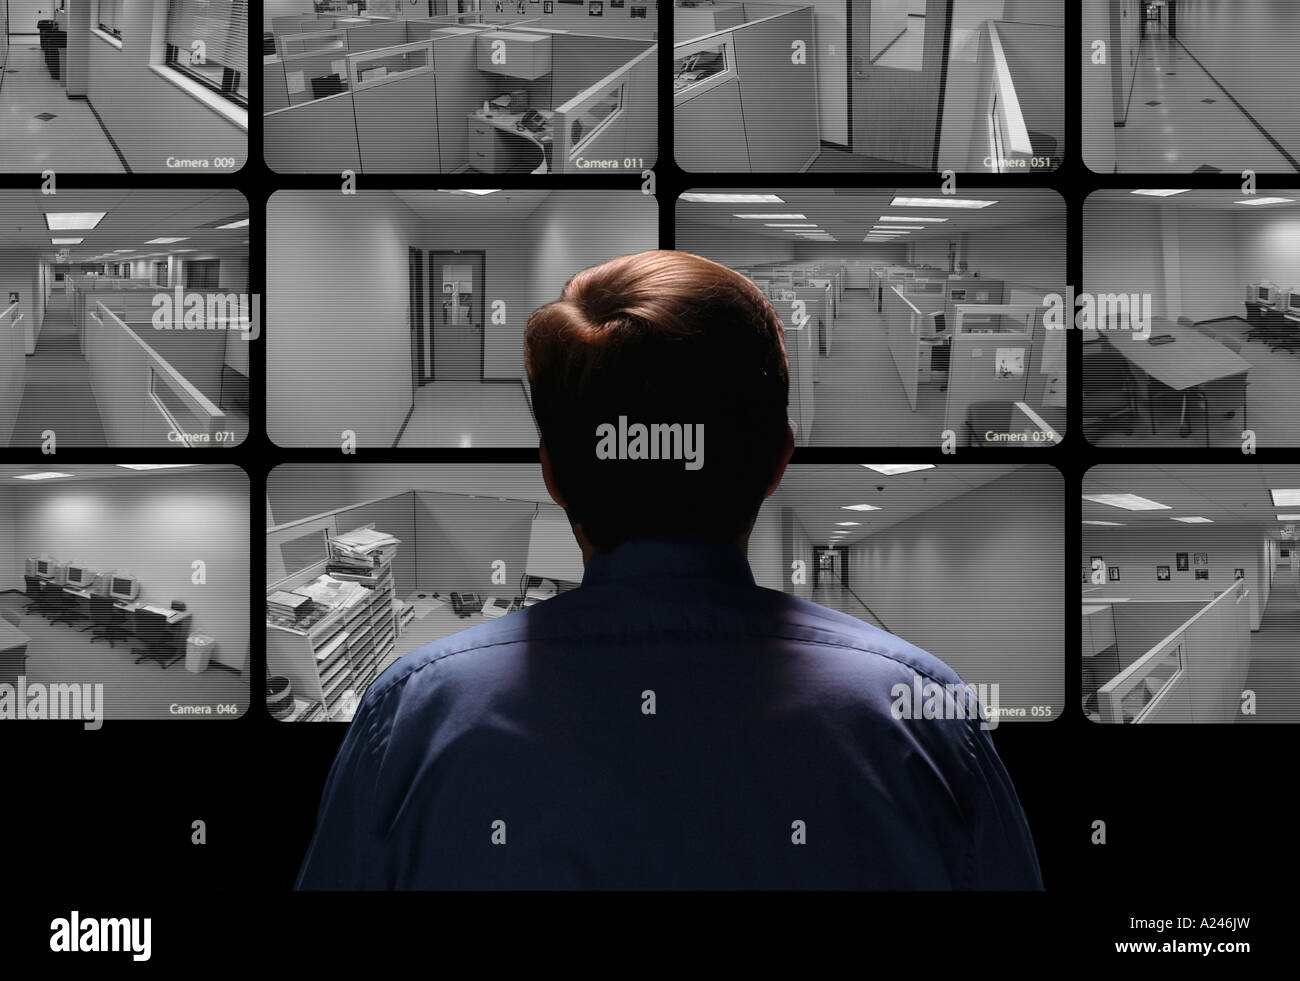 Security guard conducting surveillance by watching several security monitors - Stock Image